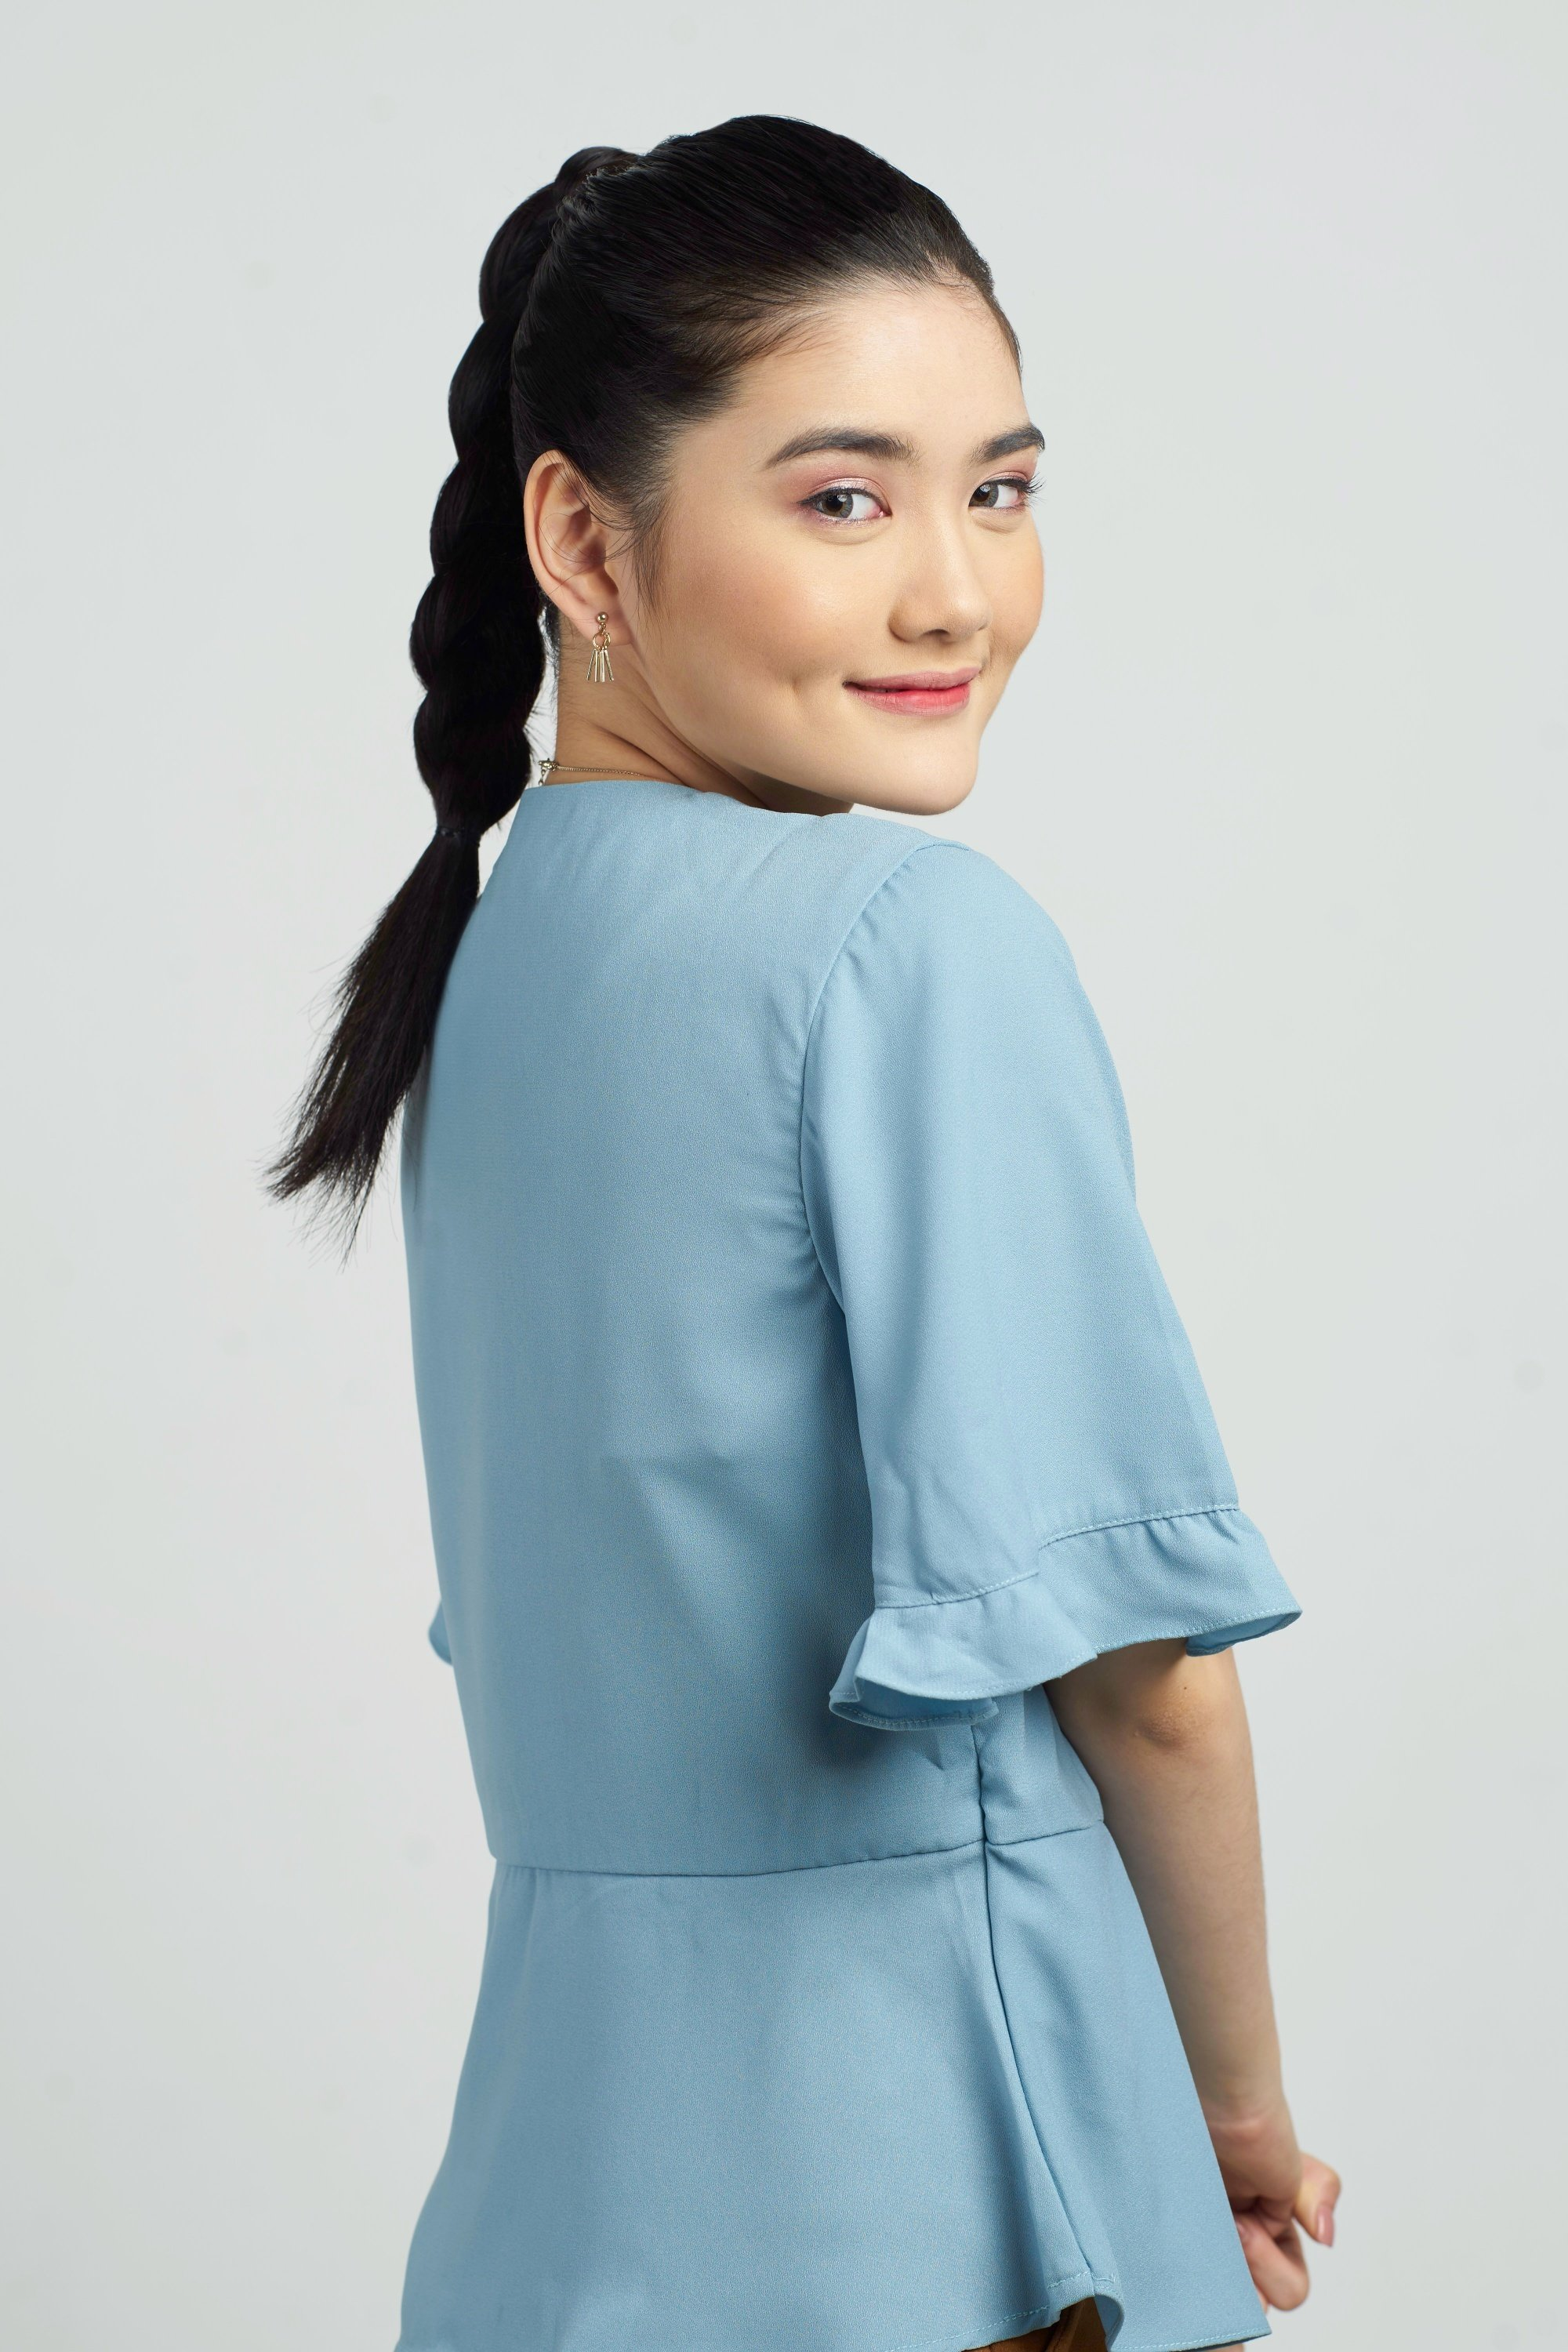 Asian woman with long hair in a braid ponytail smiling